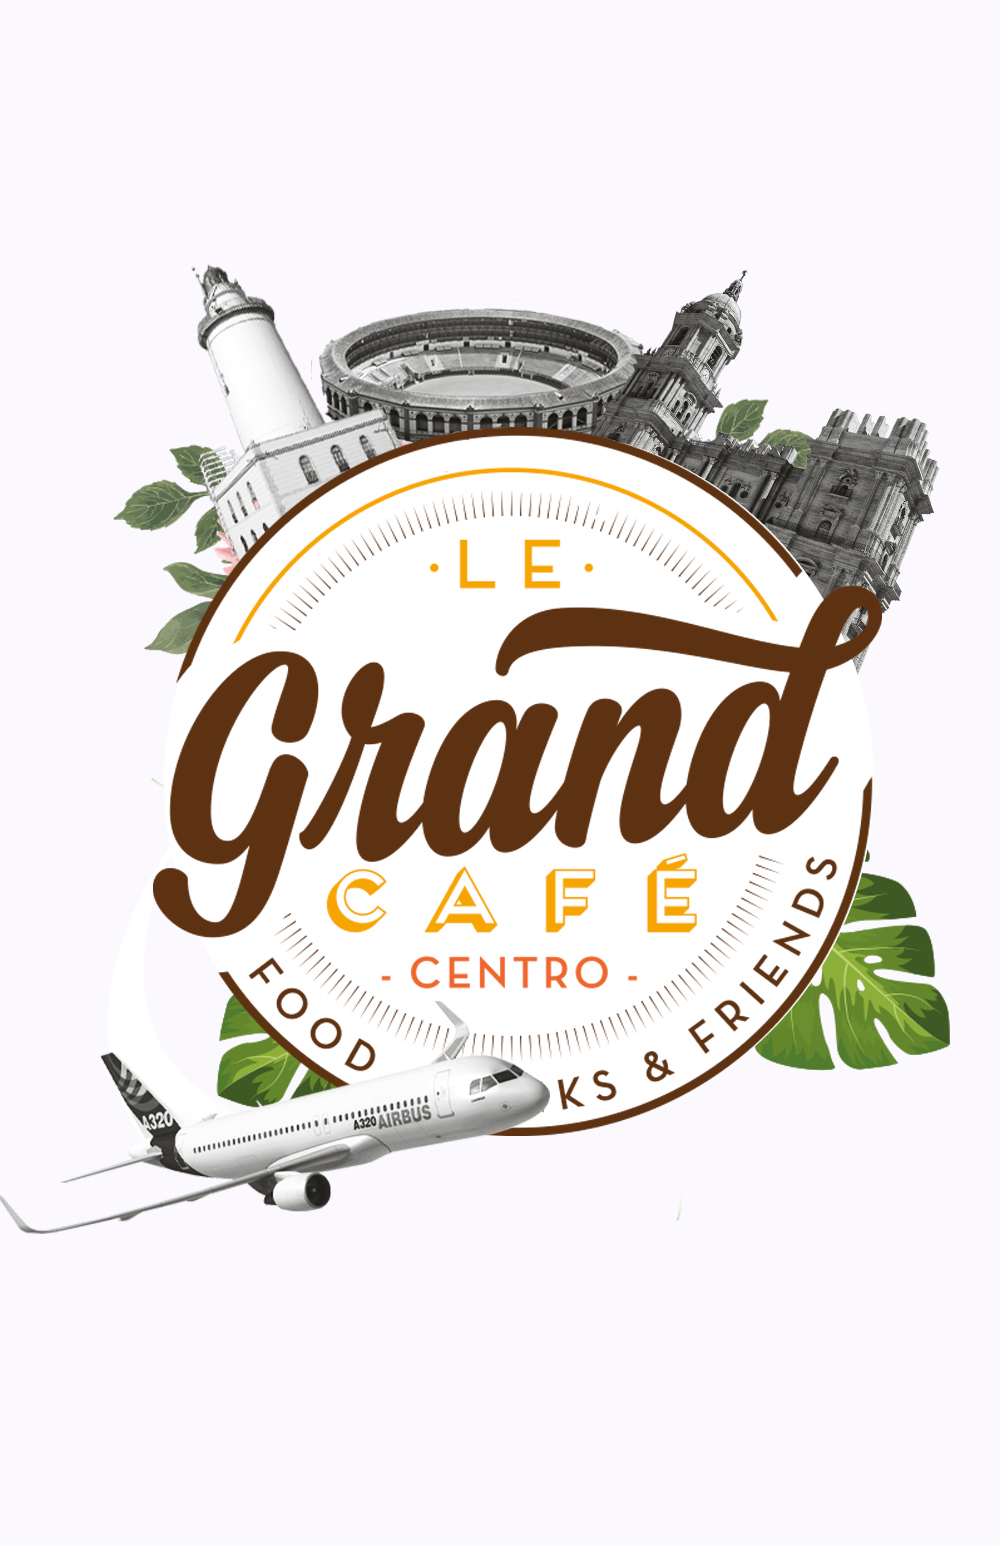 Le grand cafe front